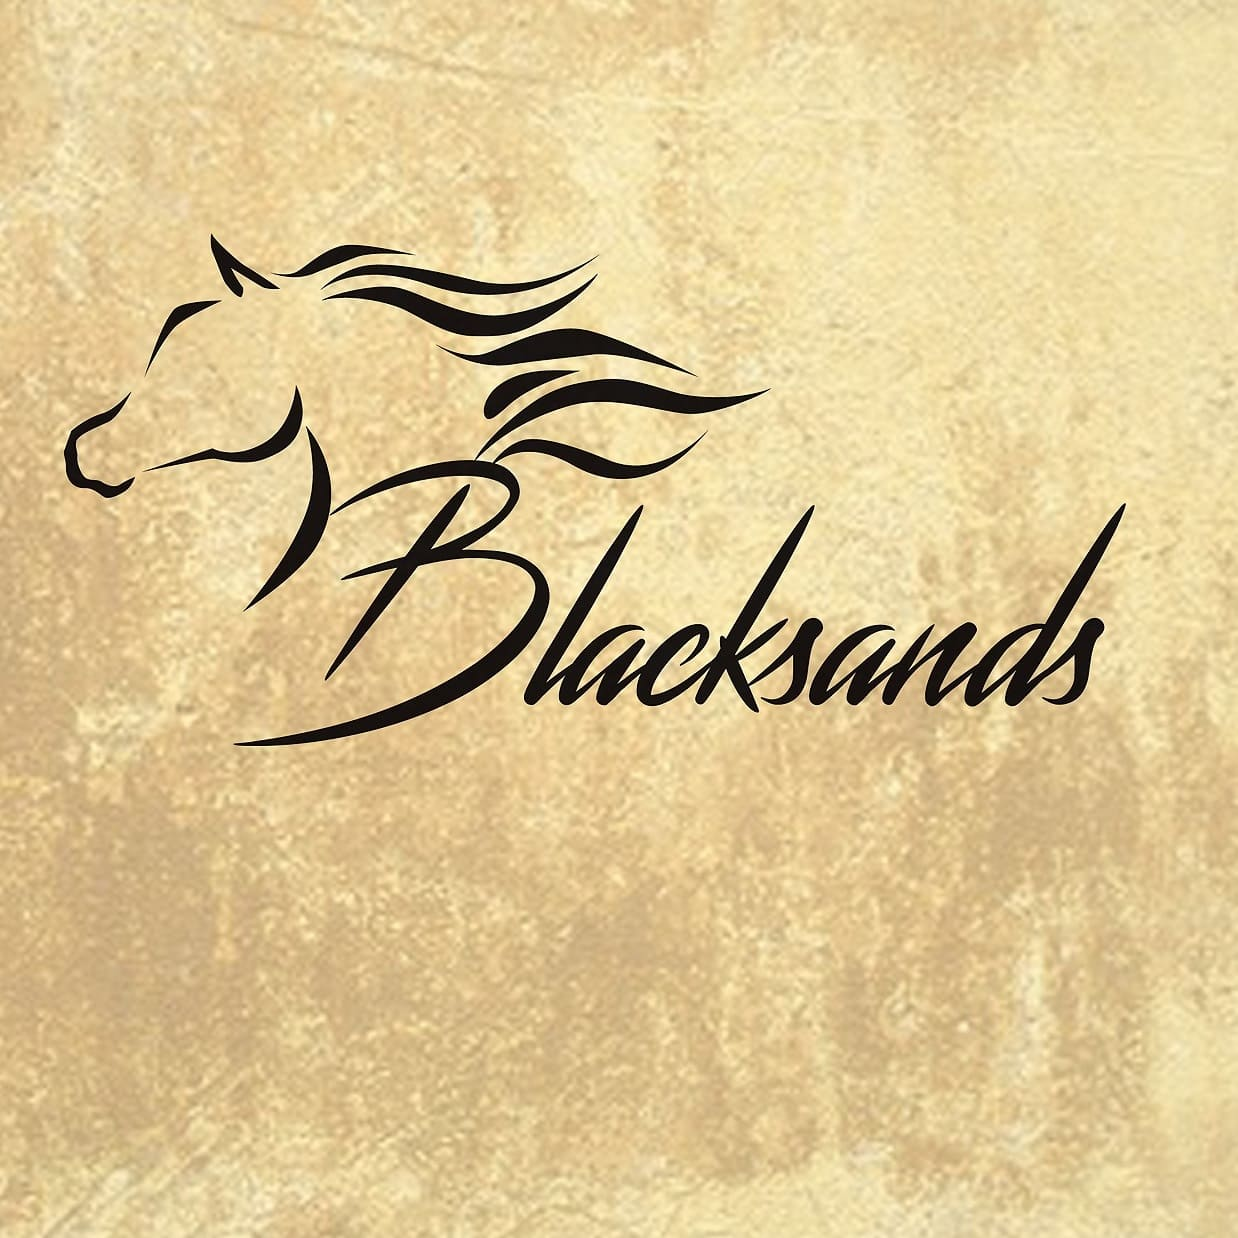 Horse logo - Blacksands